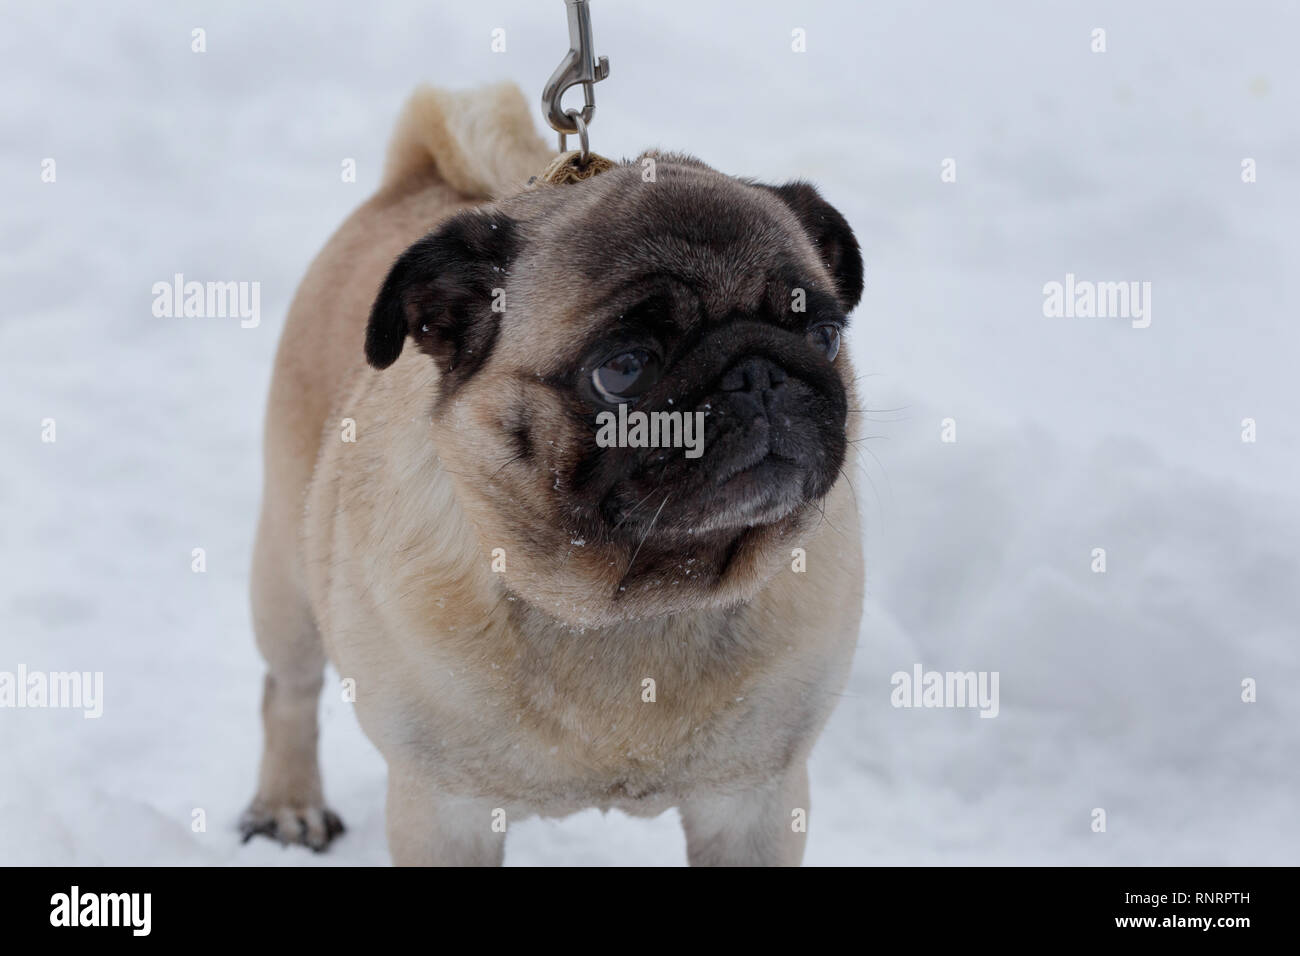 Chinese pug puppy is standing on the white snow. Dutch mastiff or mops. Pet animals. Purebred dog. - Stock Image